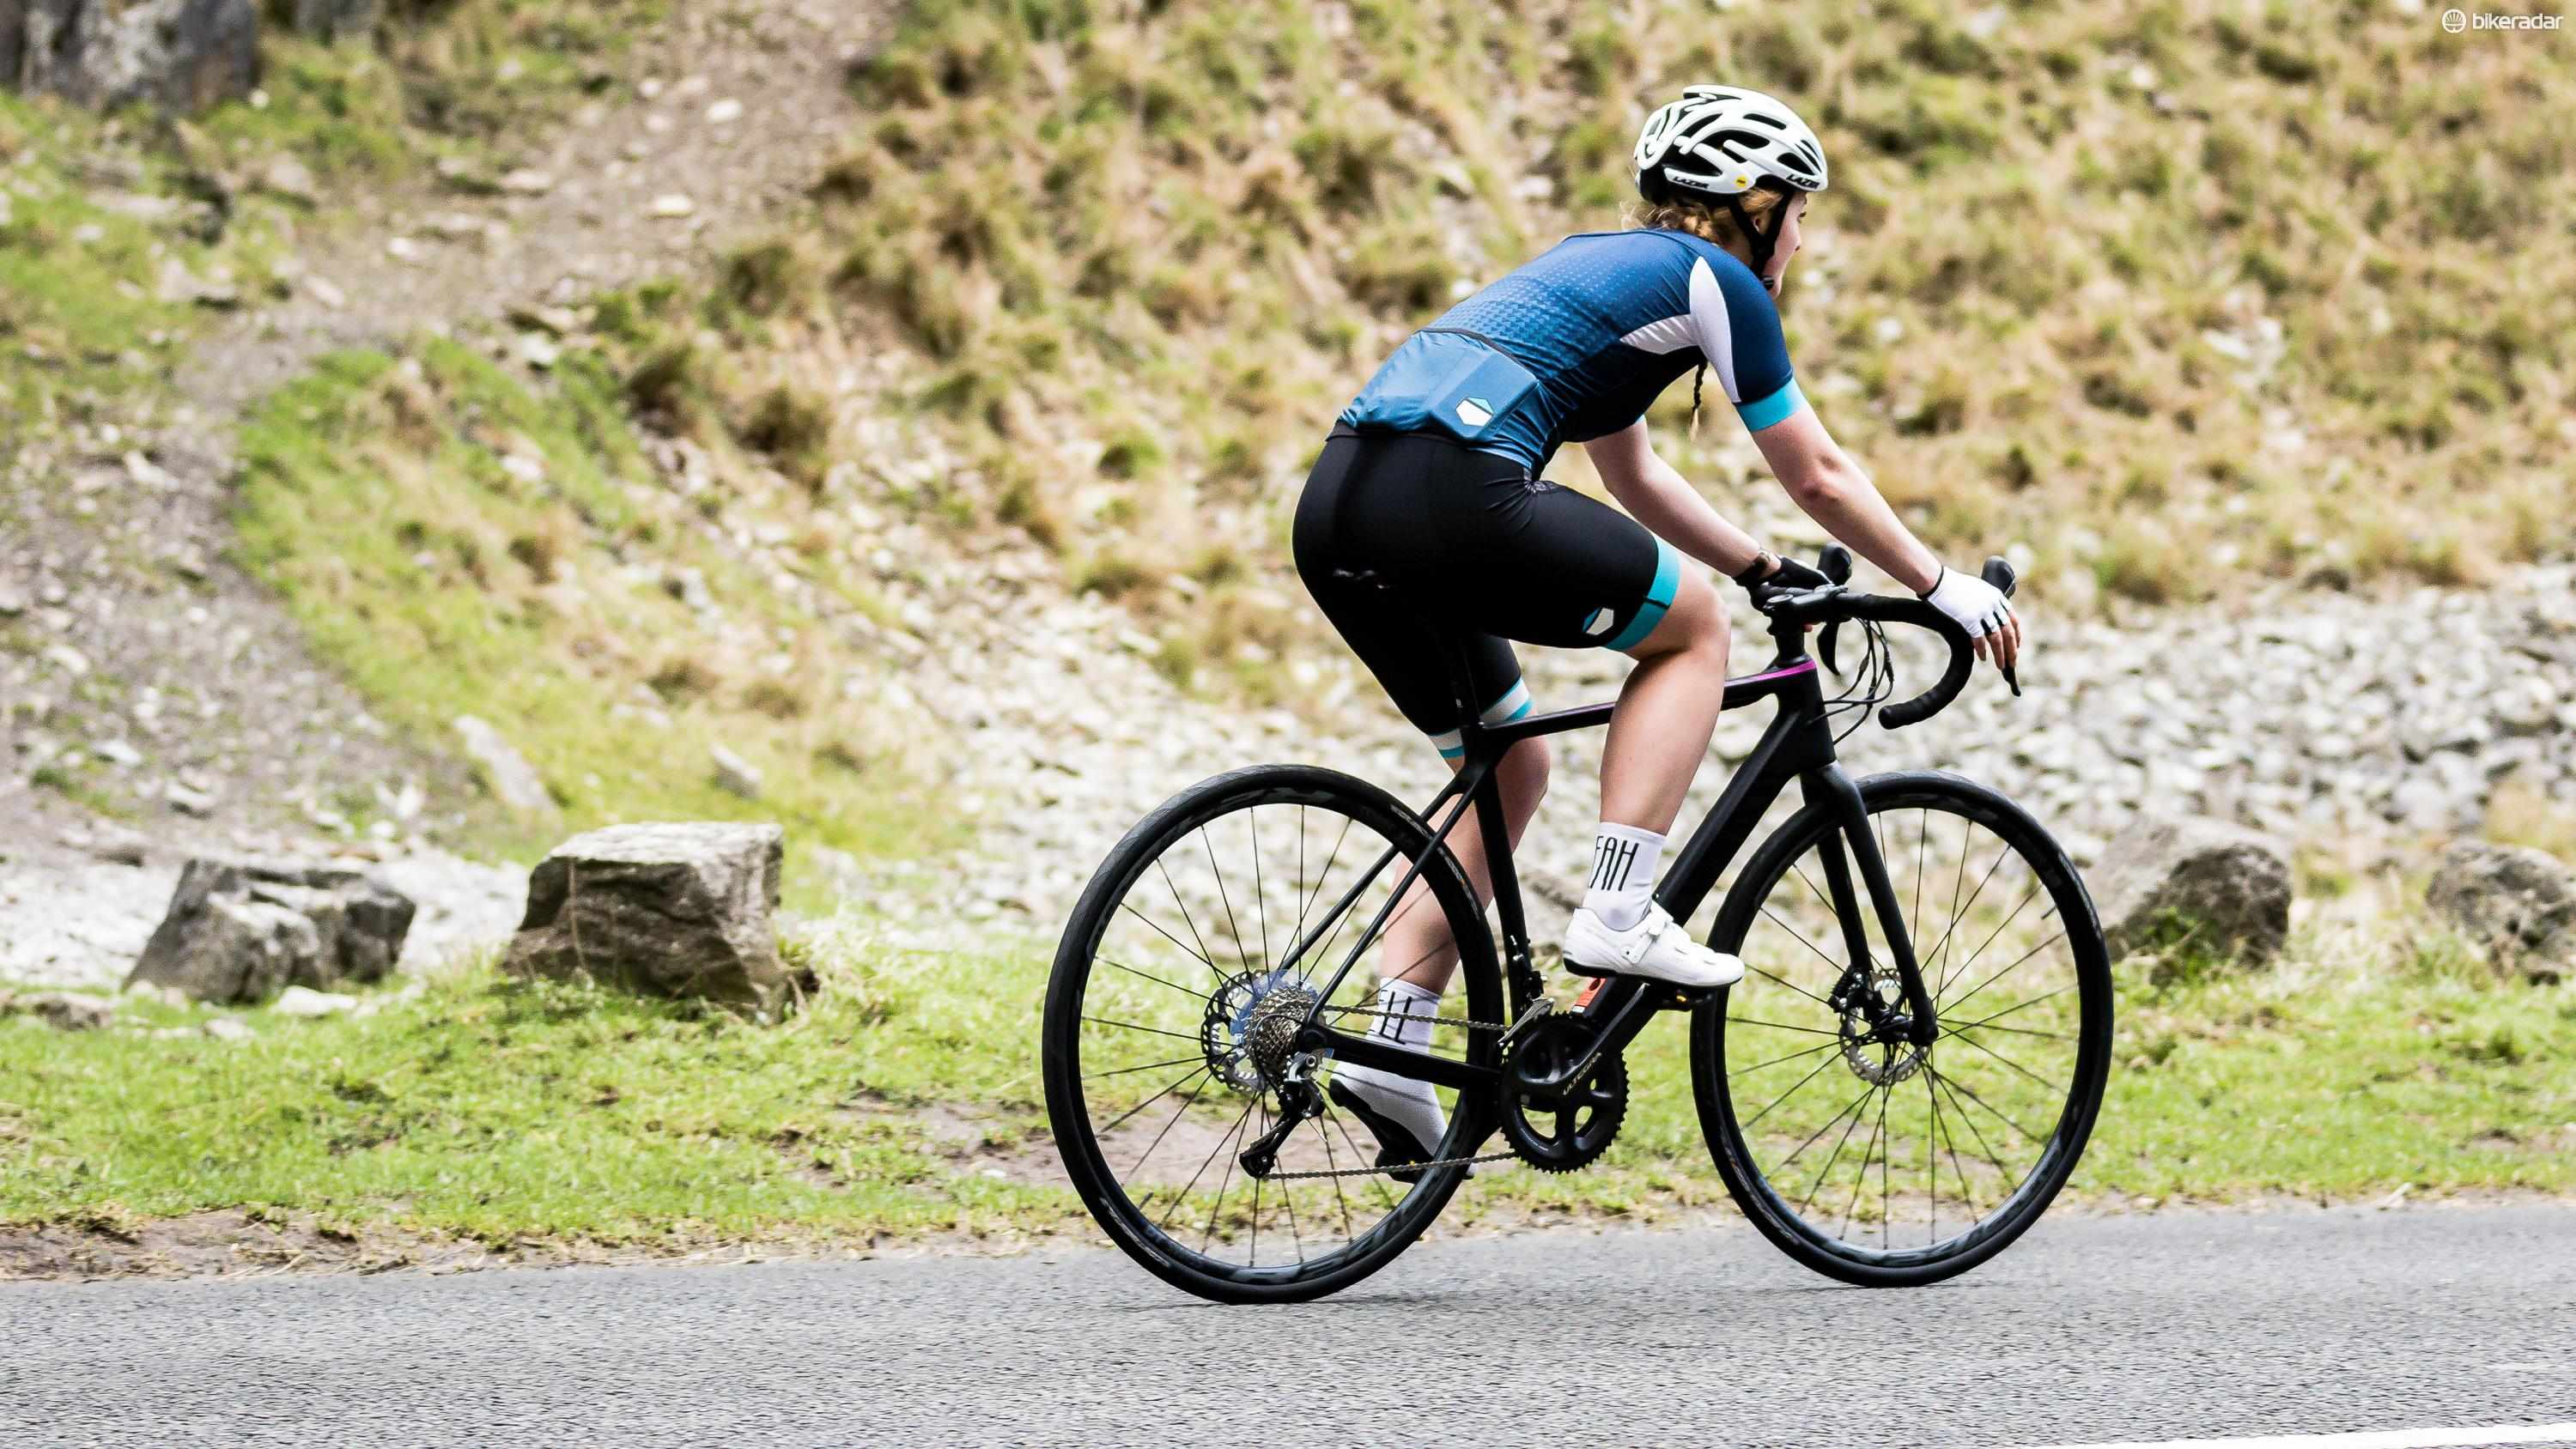 The Endurace in action in the Mendip Hills of South West England